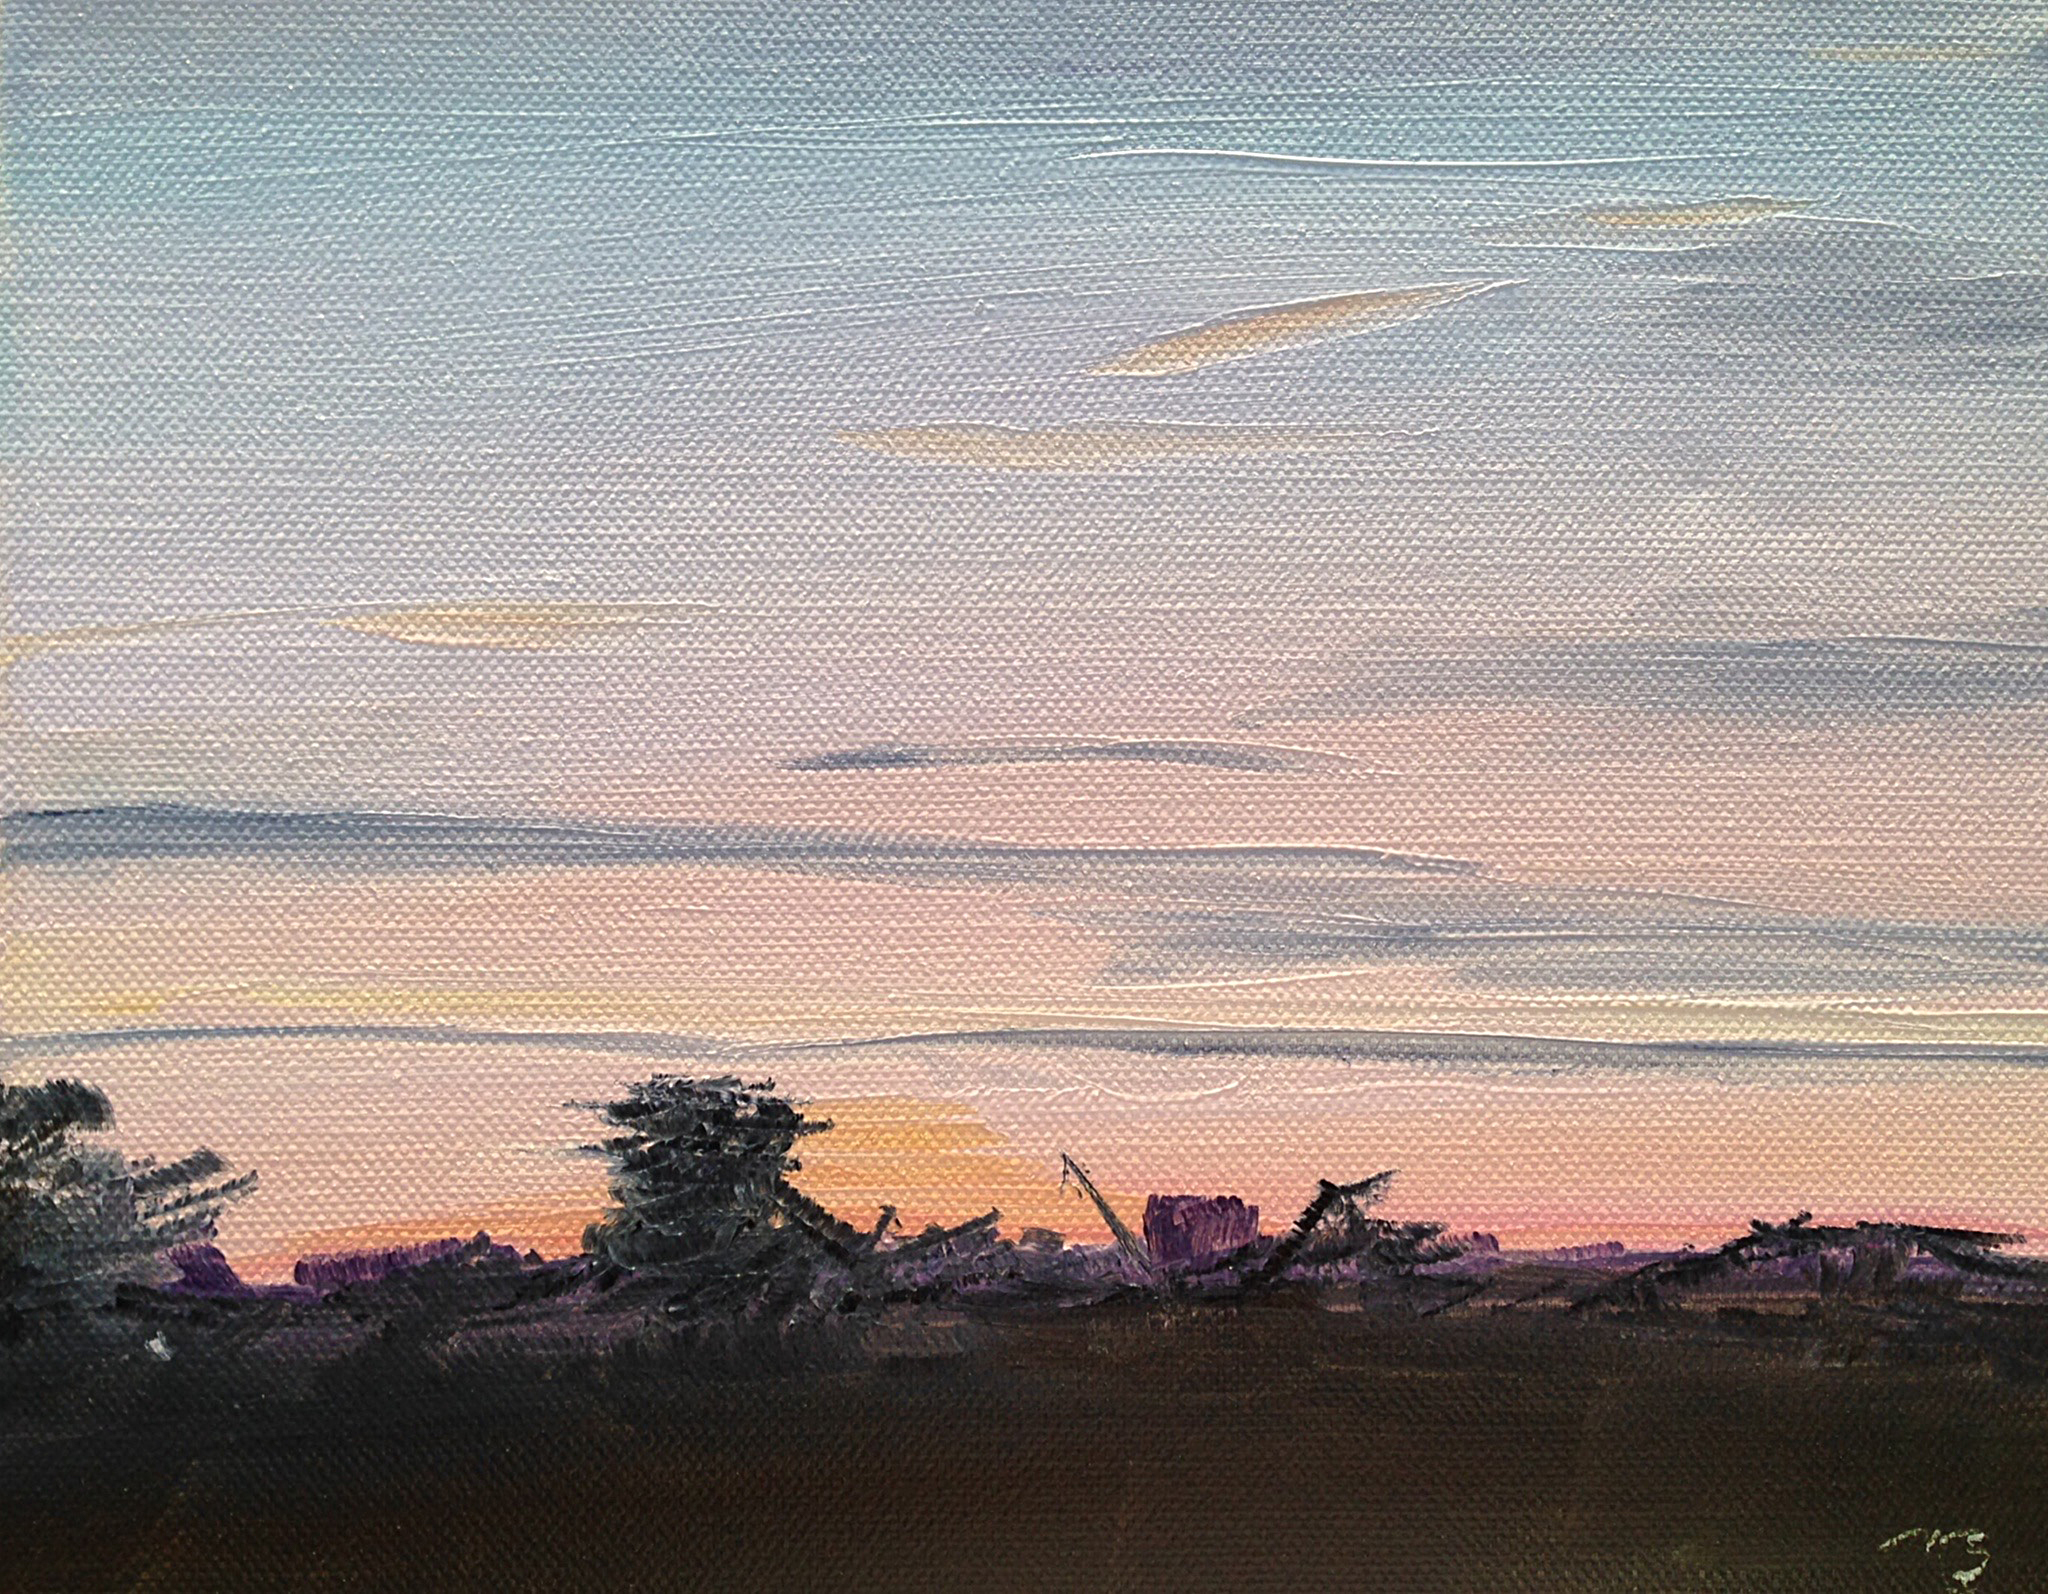 June 1, 5:39am, 9/30 8 x 10, oil on canvas.